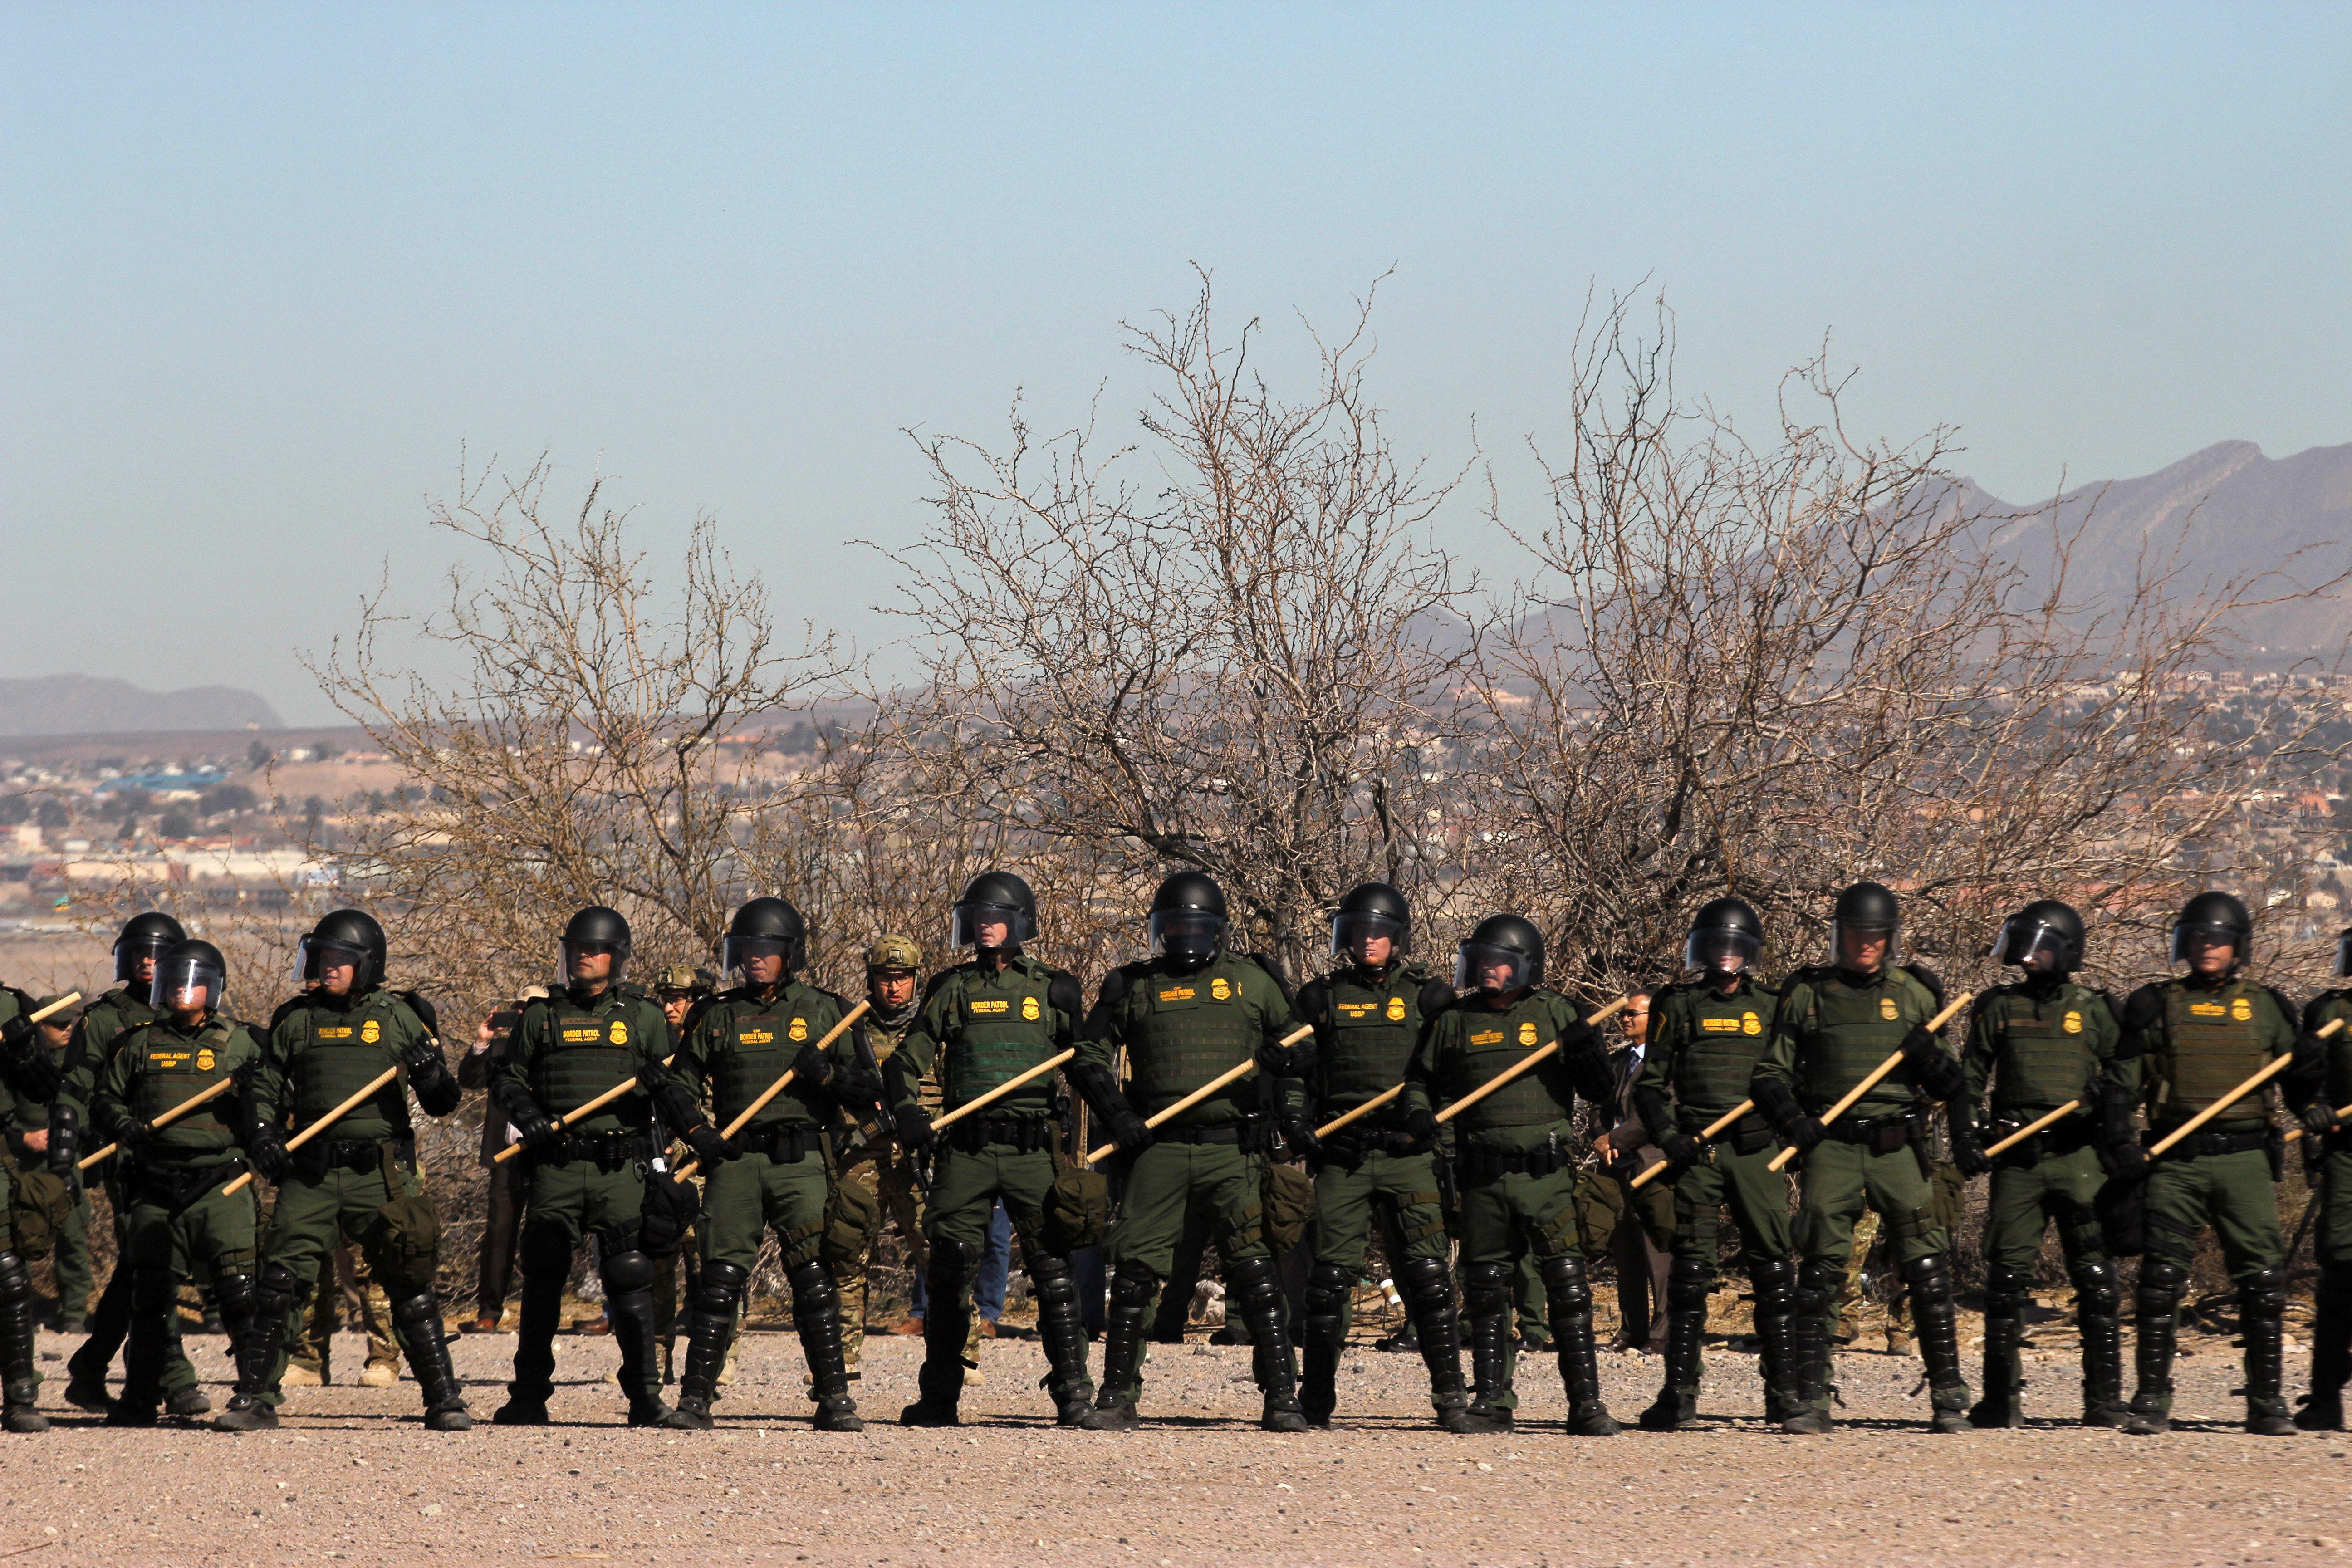 U.S. Border Patrol, Immigration and Customs Enforcement (ICE) and Customs and Border Protection (CBP) agents take part in a safety drill in New Mexico on Jan. 31, 2019.